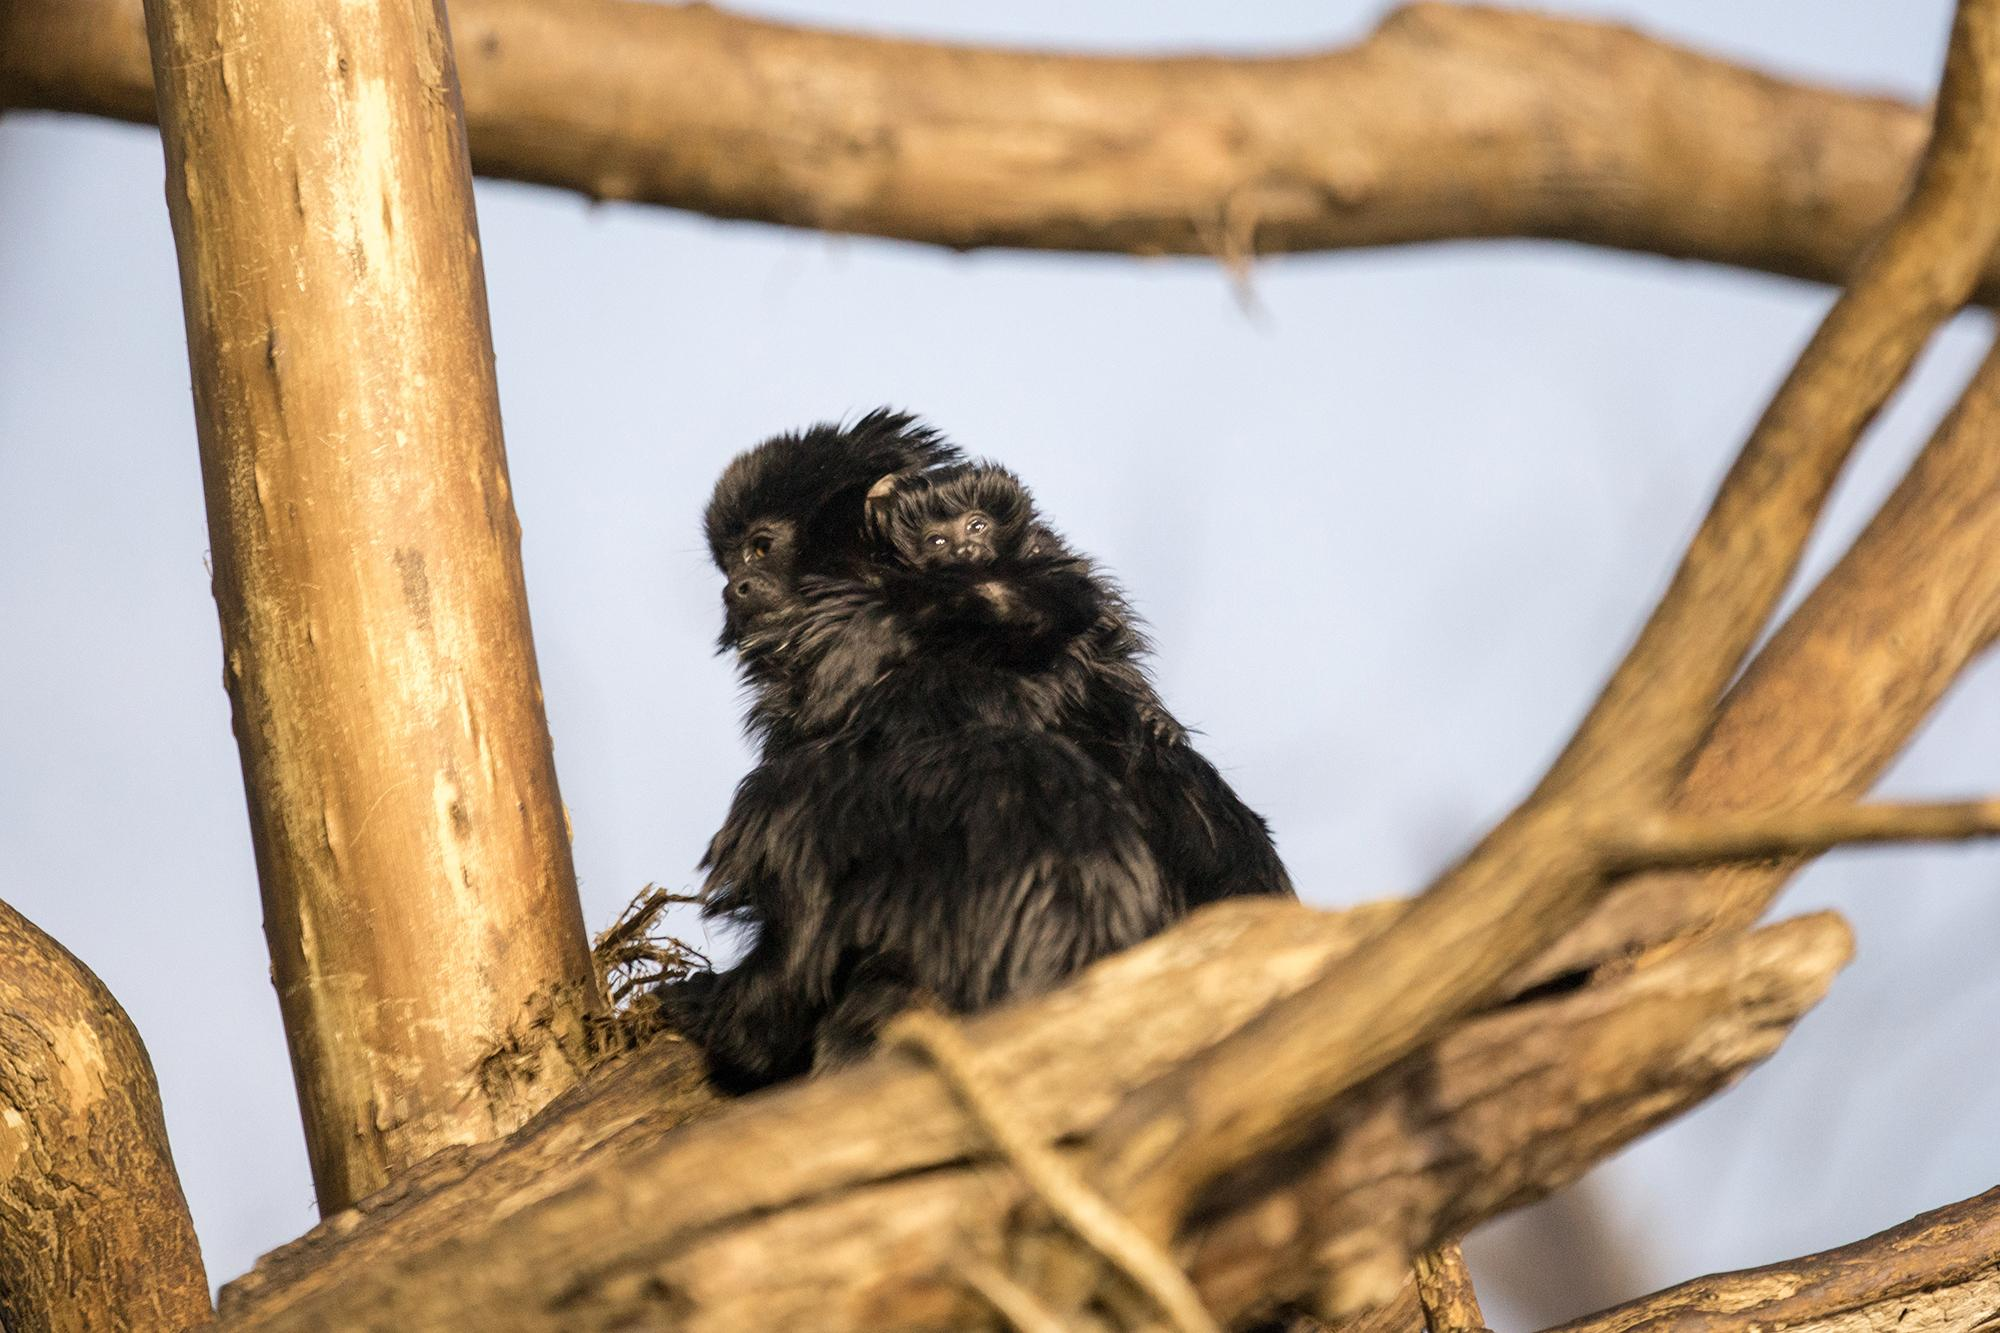 Lincoln Park Zoo's newborn Goeldi's monkey is barely visible as it clings to its mother's neck. (Julia Fuller / Lincoln Park Zoo)